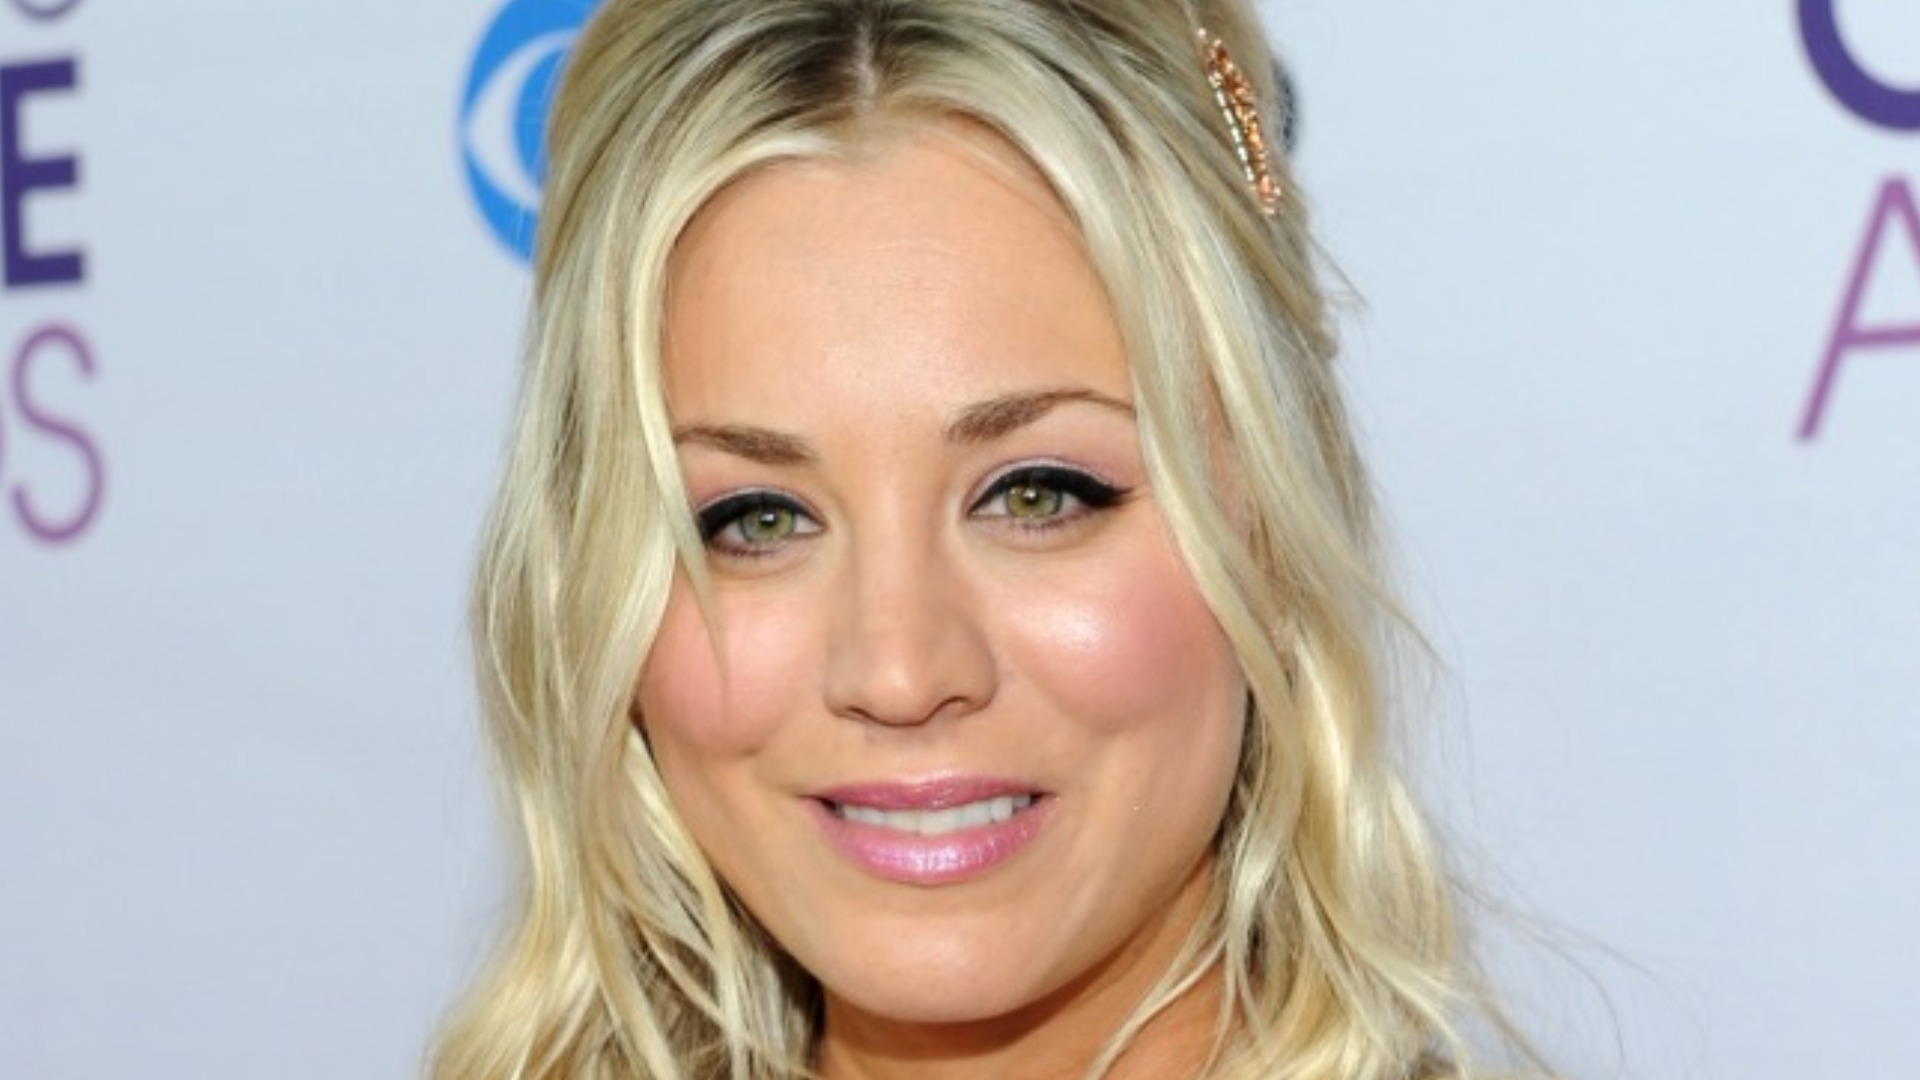 This Is How Much Kaley Cuoco's Divorce Cost Her